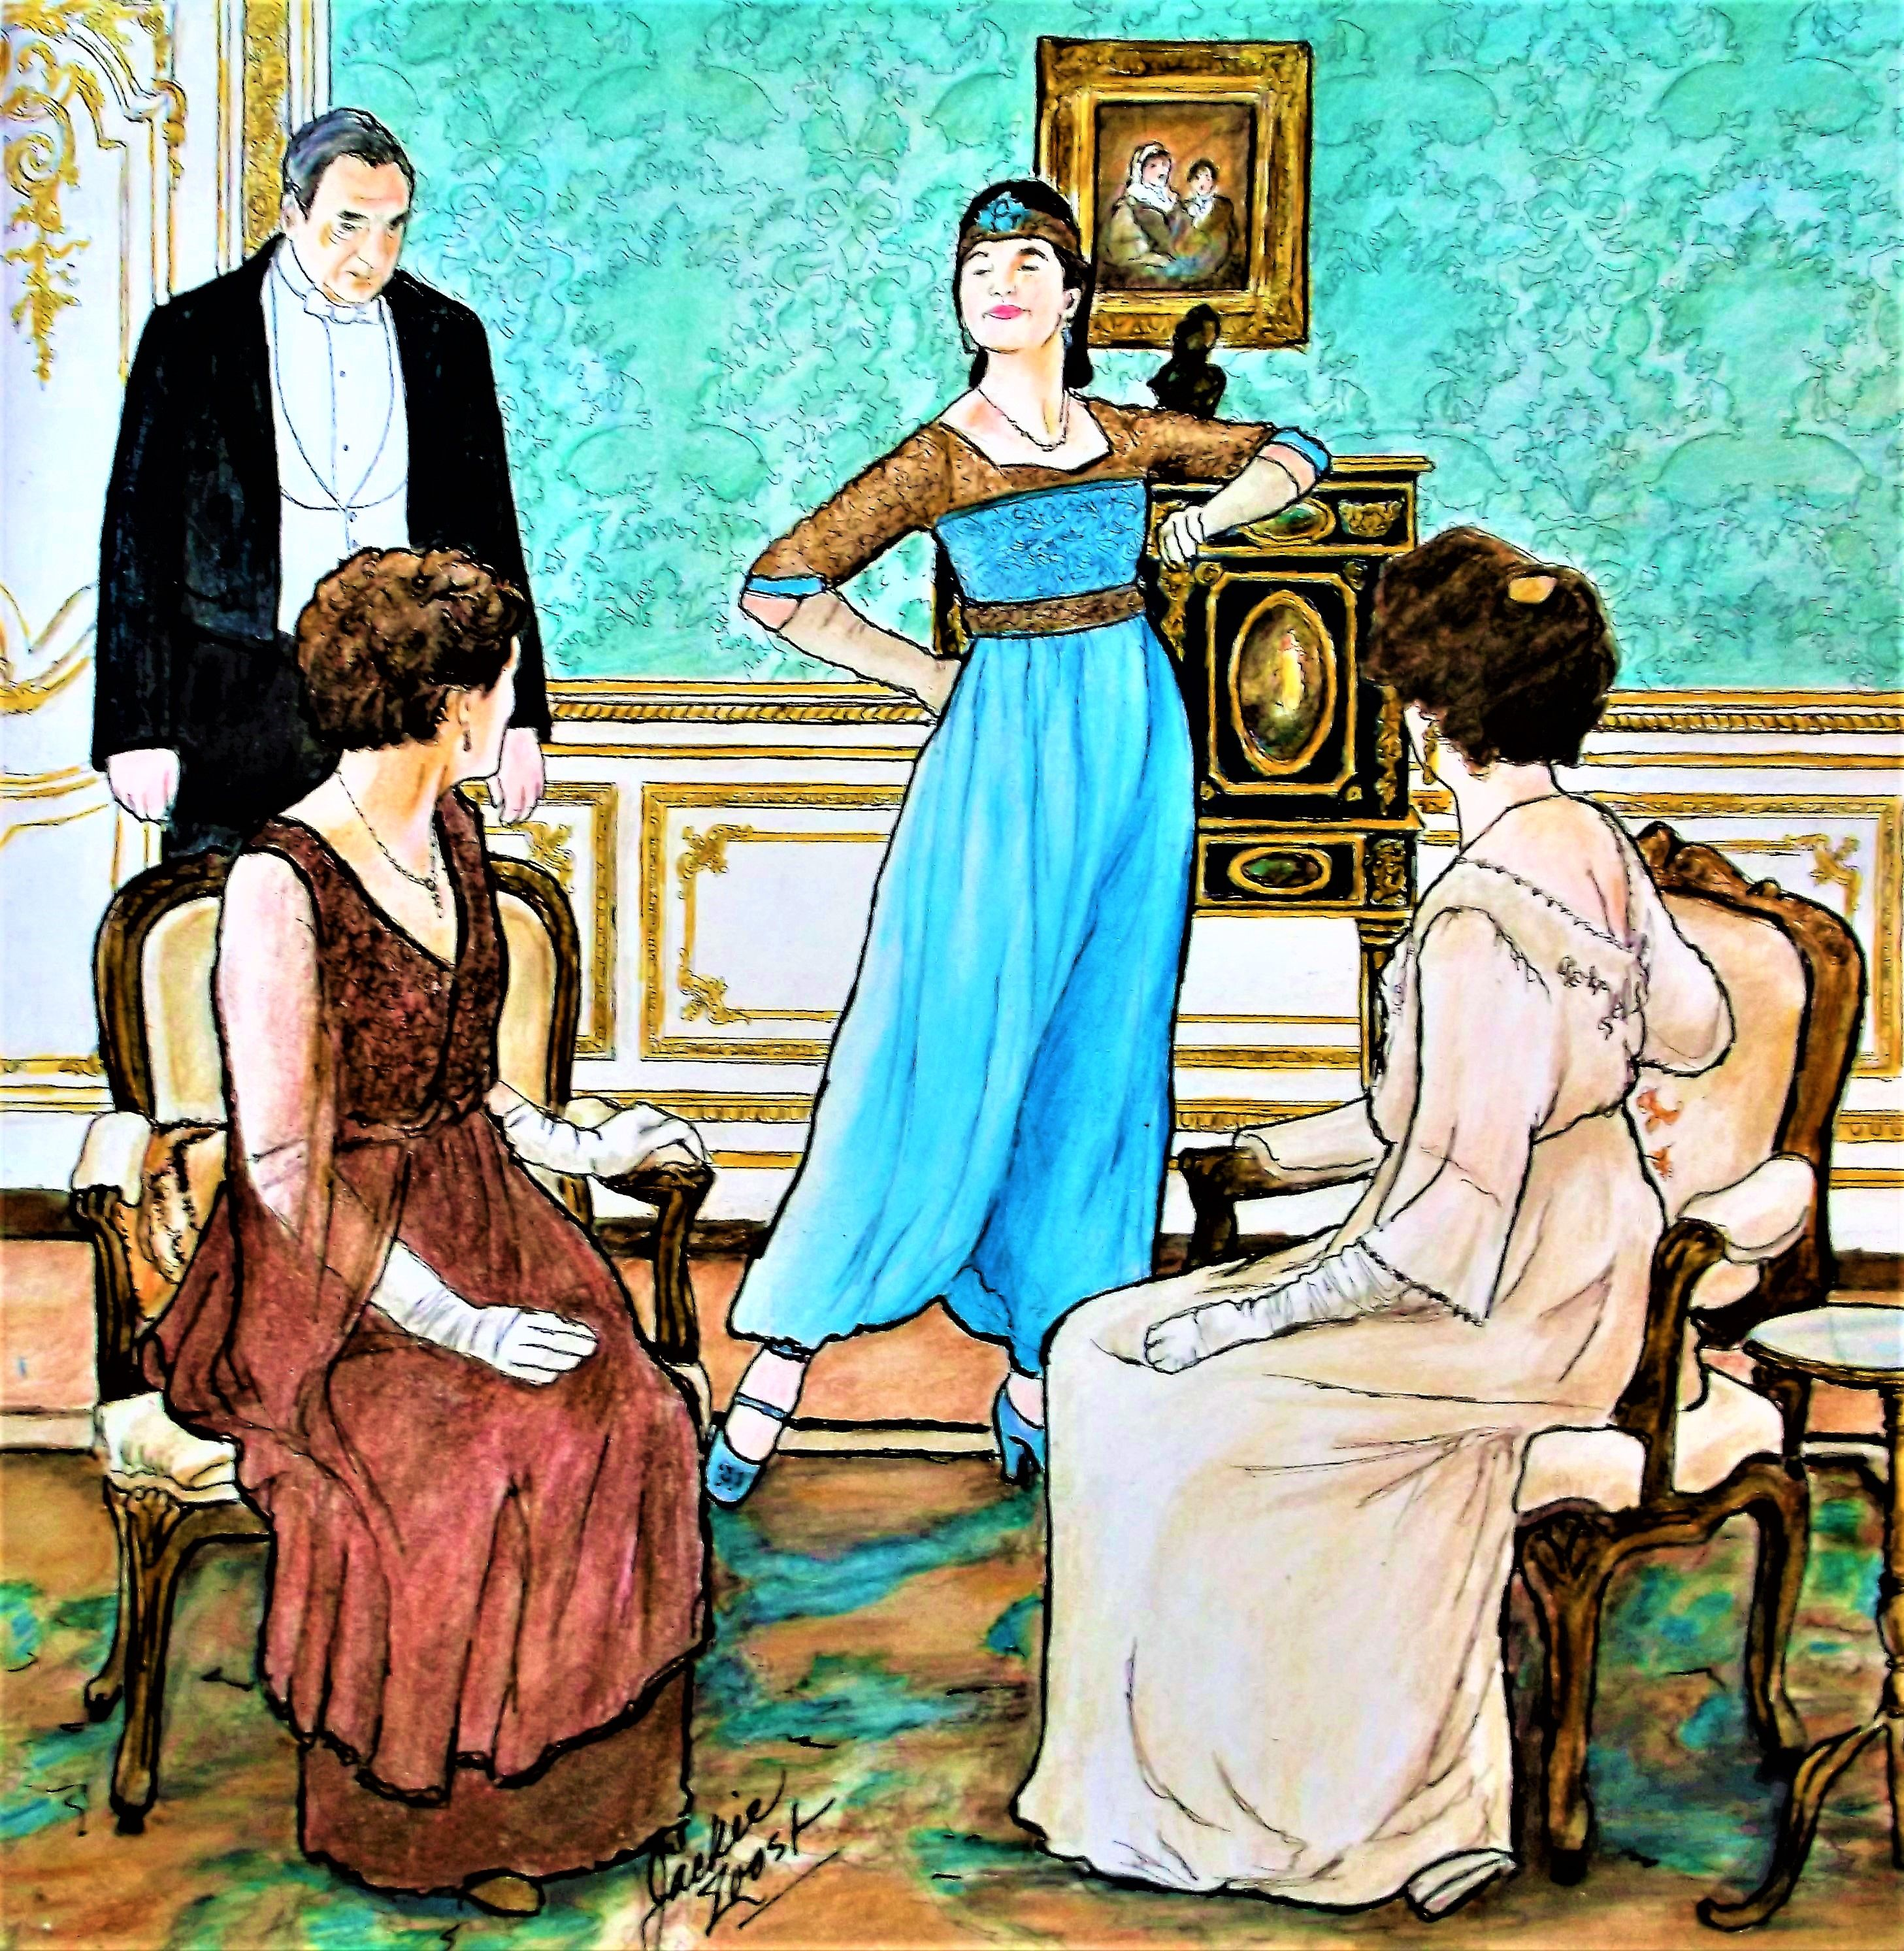 """Colorist Jackie Zoost . Illustrating artist Gwen Burns. From """" Downton Abbey Coloring book."""" Done with FC Polychromos, Prismacolor, Caran D'Ache pencils and Stabilo and Staedtler fine liners."""